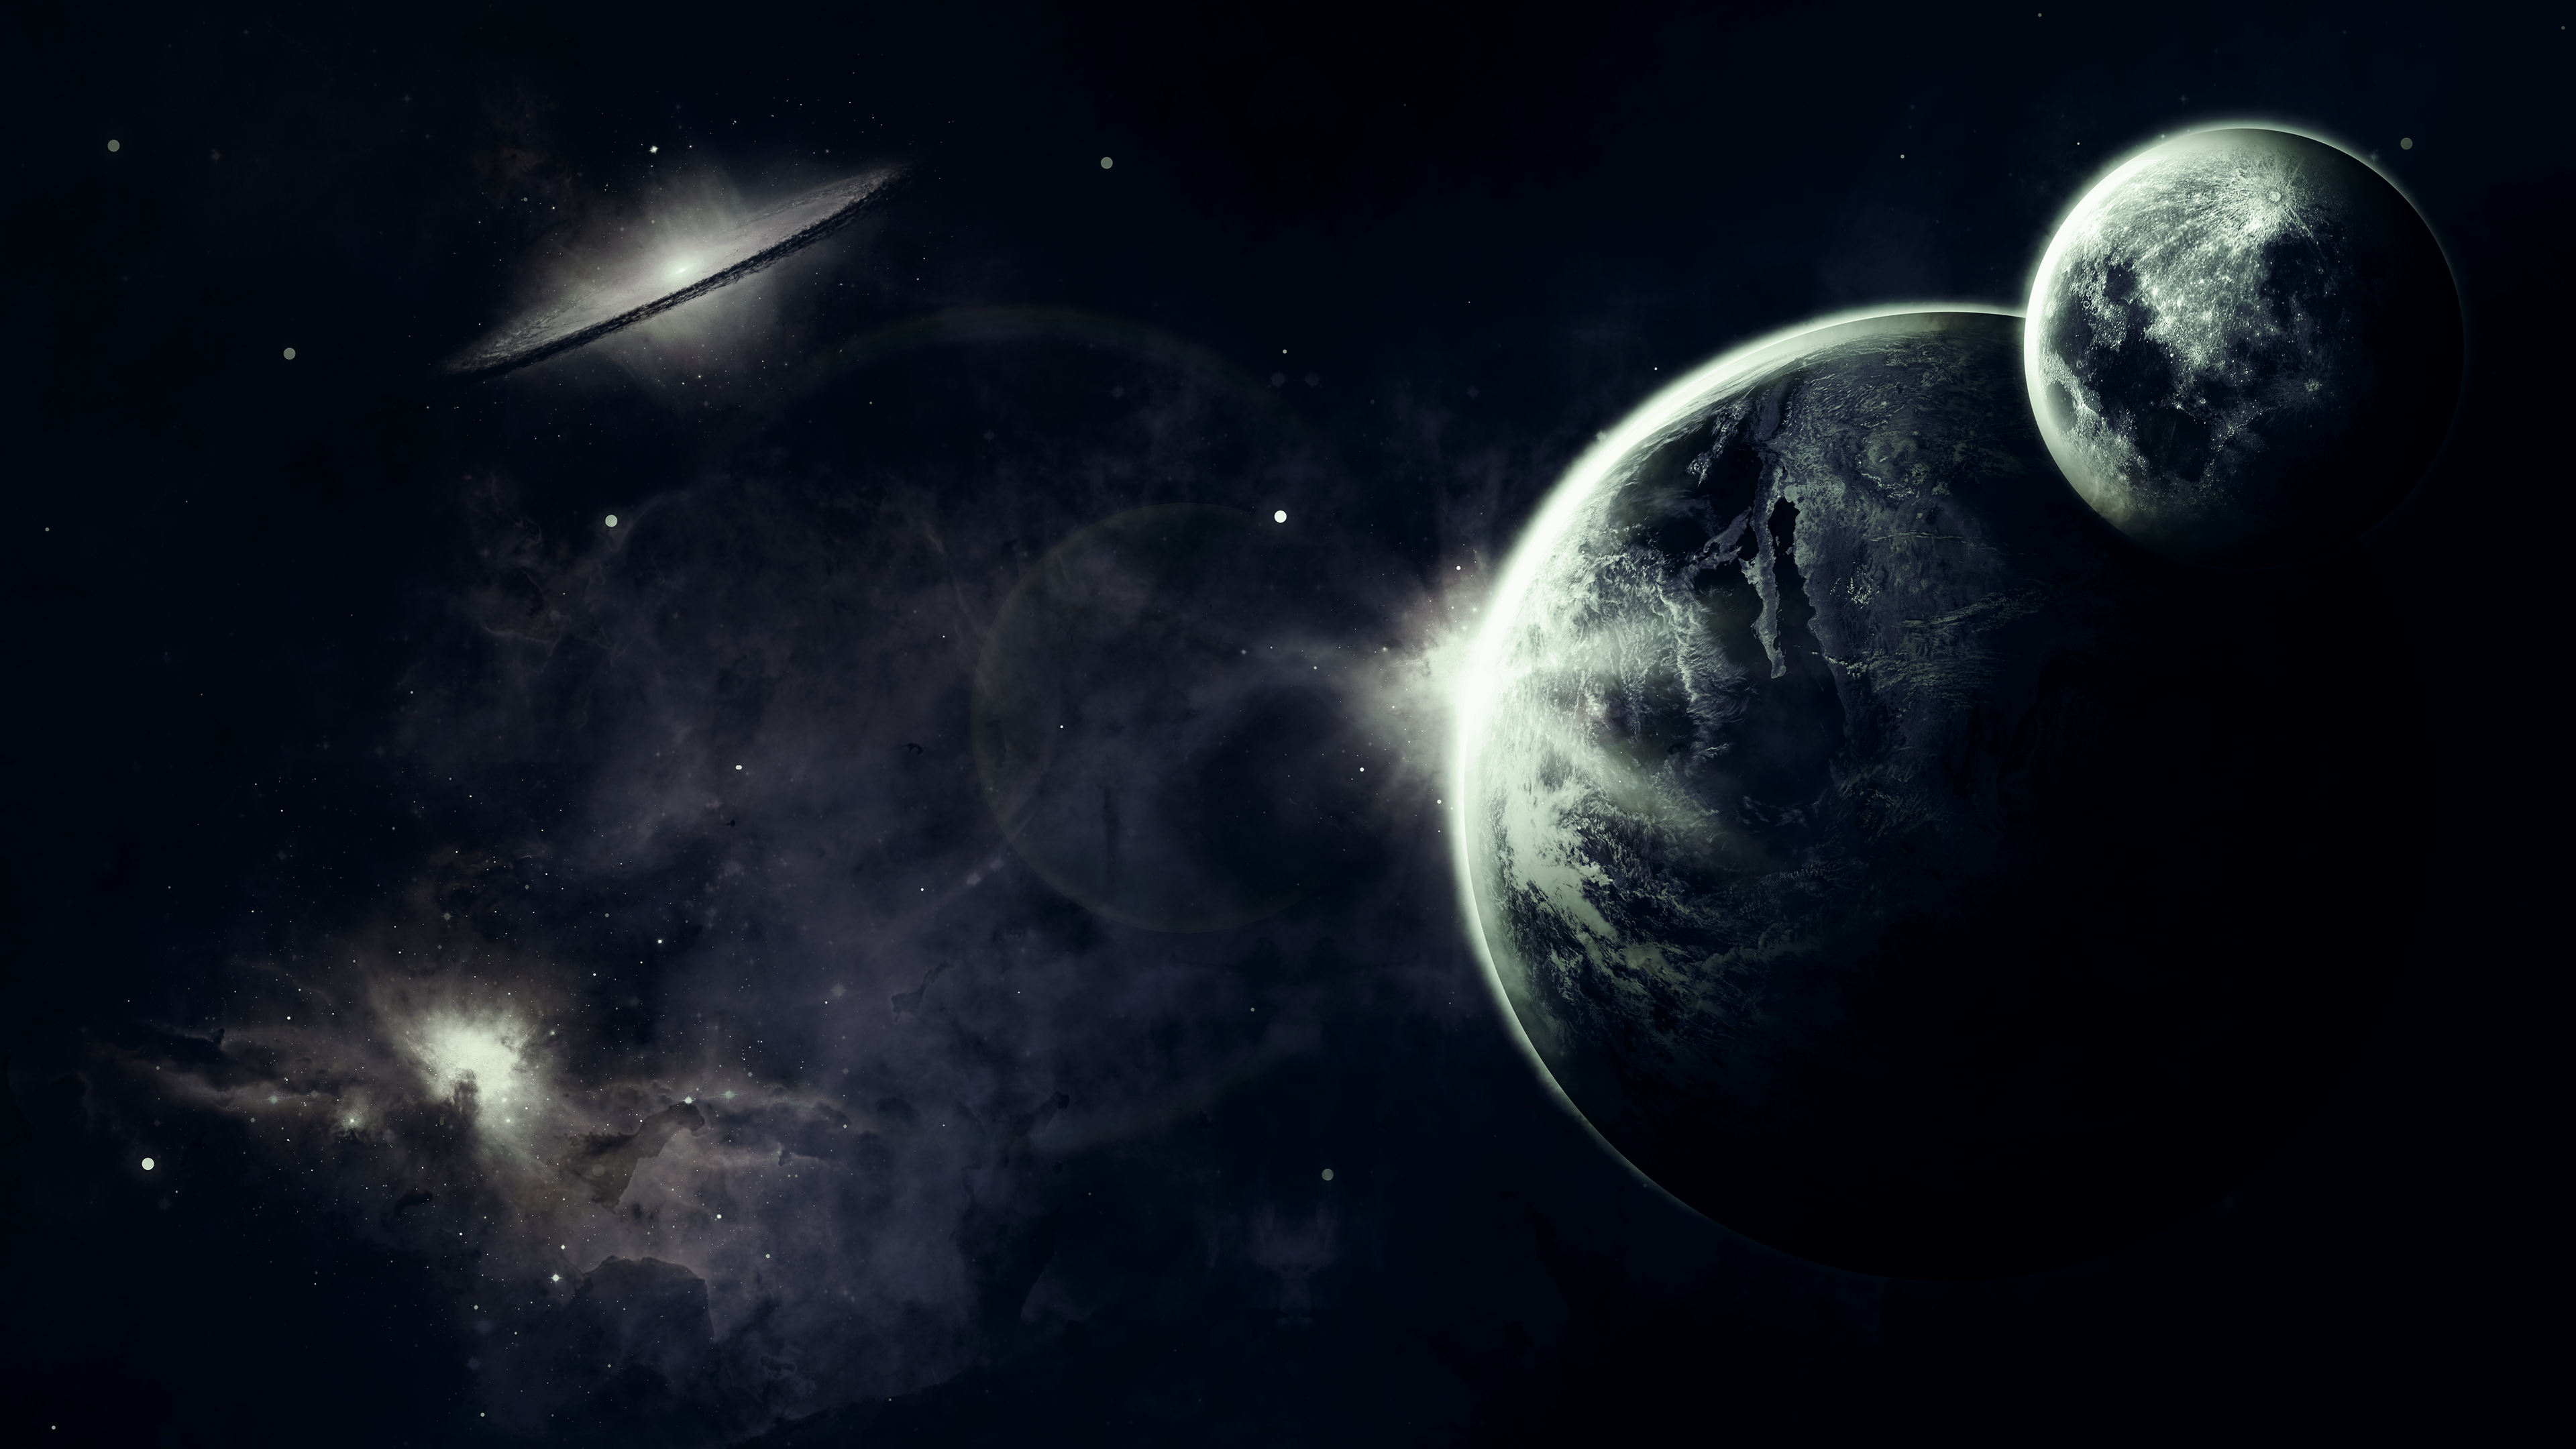 Download dark space laptop wallpaper in uhd 4k 0136 - Dark space hd ...